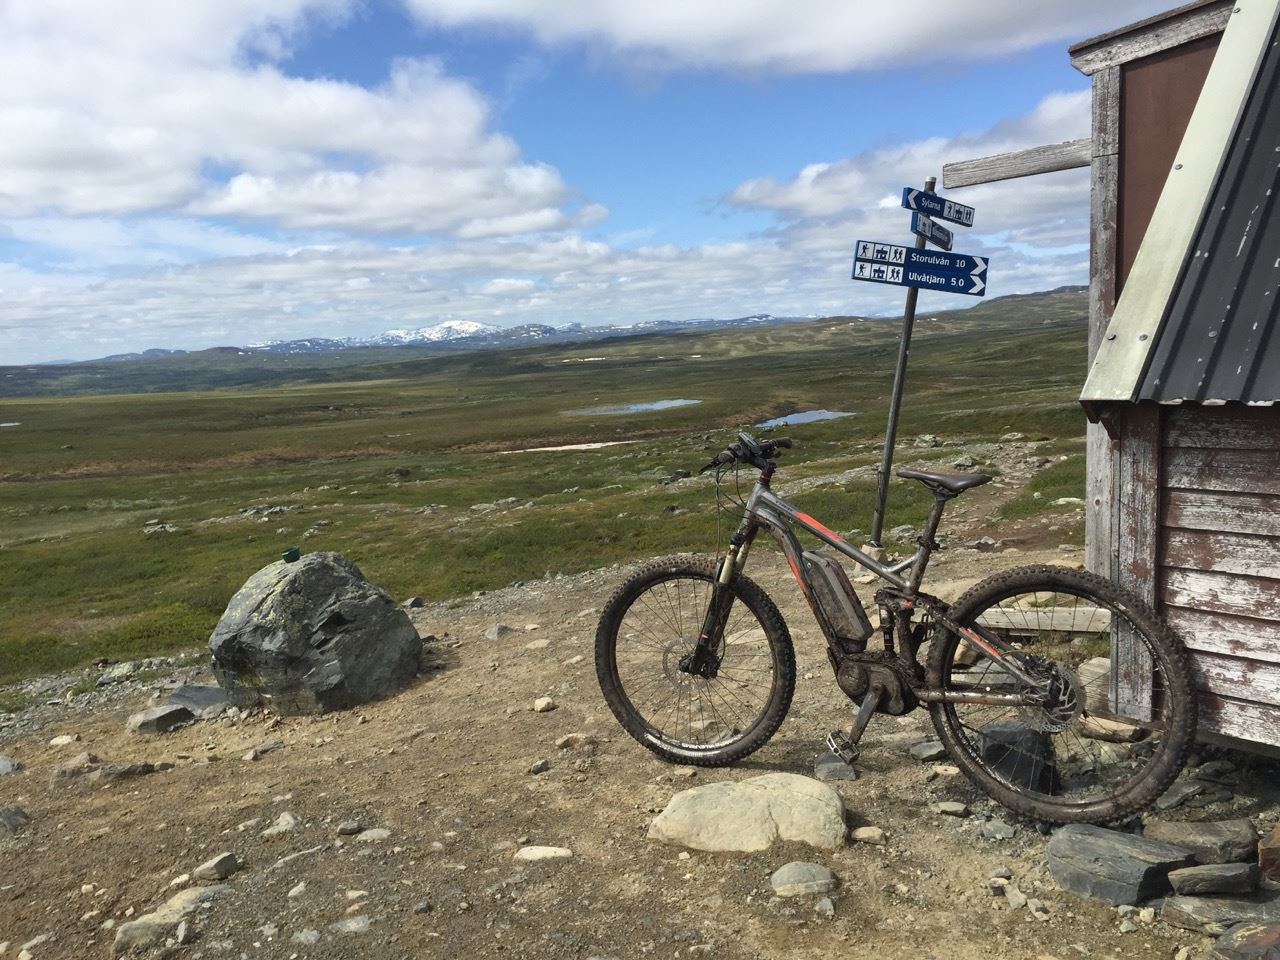 Rent electric mountain bike and get help up the hills